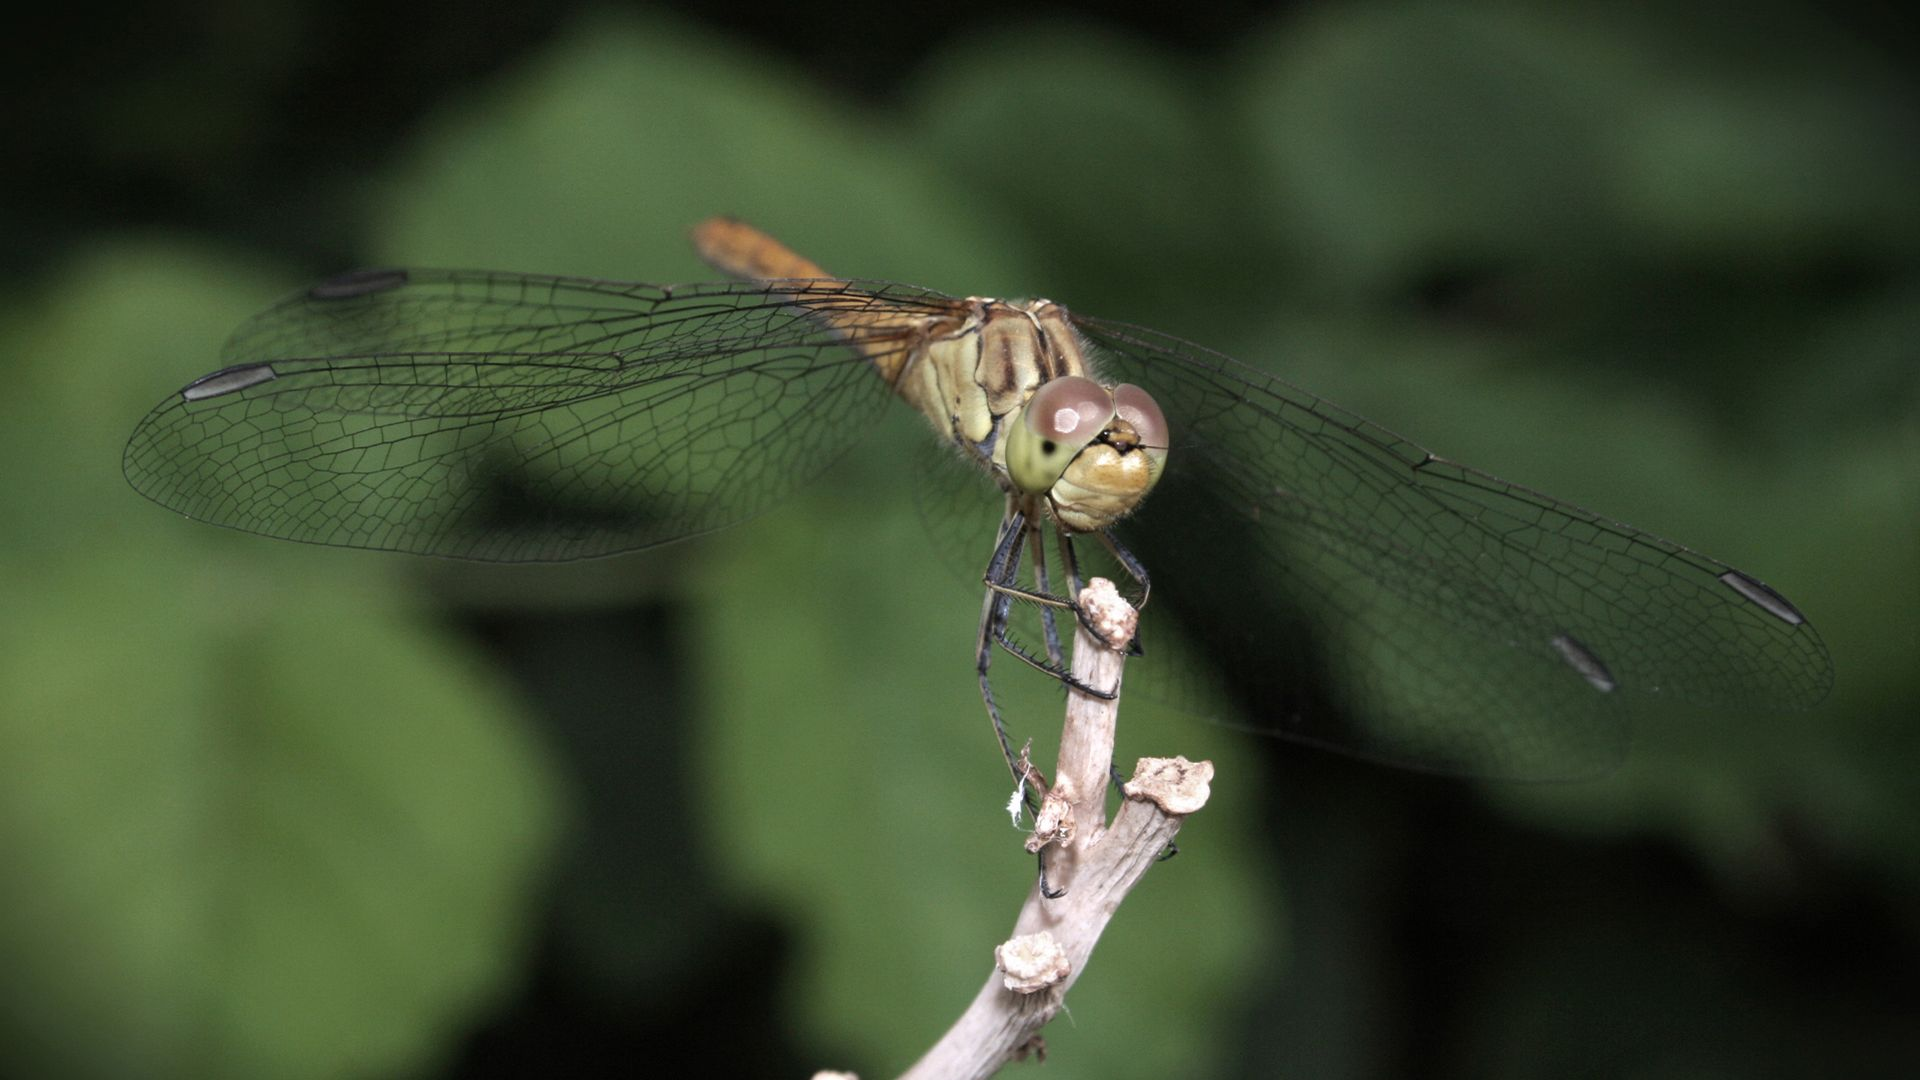 Dragonfly 1080p HD Wallpaper Nature Places to Visit 1920x1080